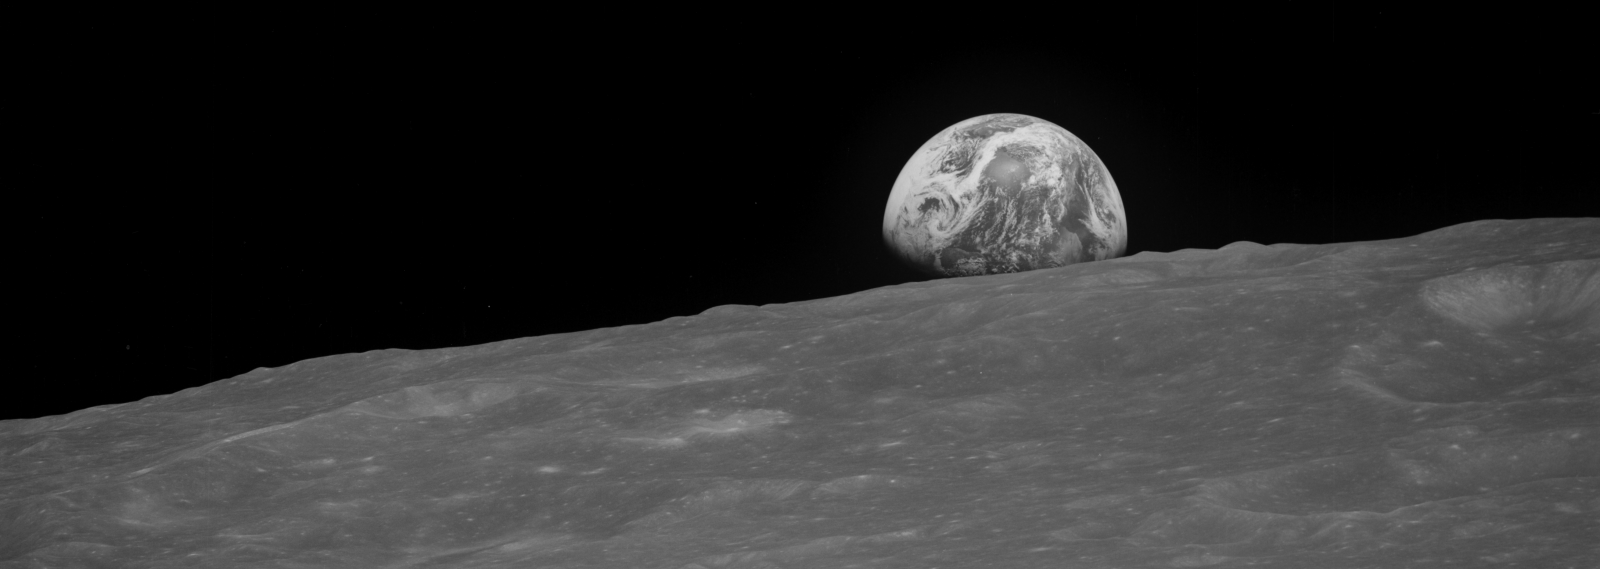 During Christmas Eve in 1968, the crew of Apollo 8 broadcast a live transmission to all who were following their journey from the distant blue marble of Earth. Image credit: NASA